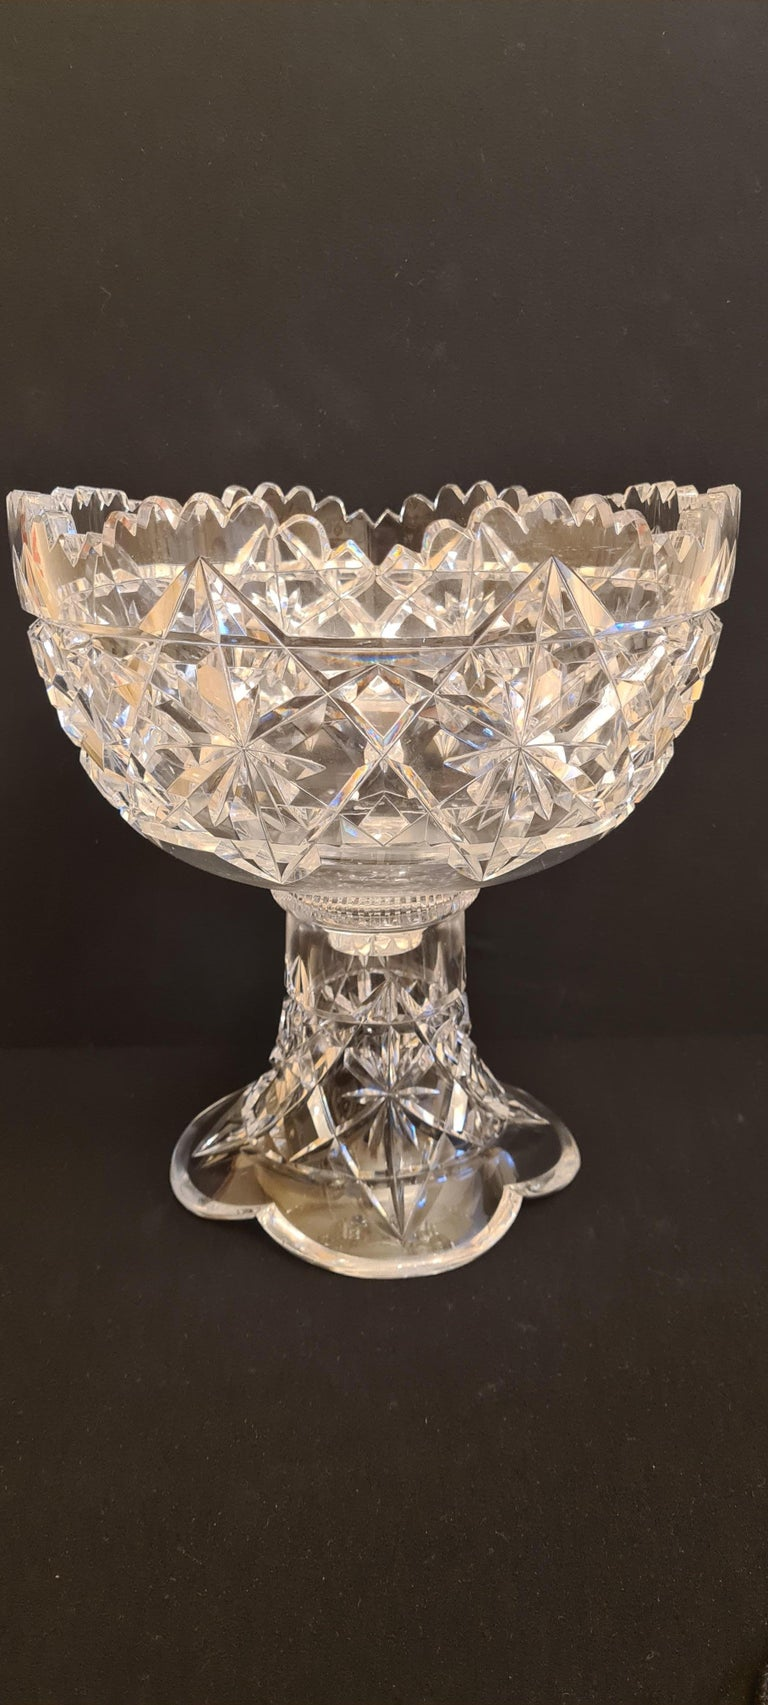 Amazing antique American Brilliant cut crystal punch bowl by Hawks & Co.; Years 1880-1900.  This cut crystal two piece punch bowl, stand and bowl by T.G. Hawkes & Co. exibits the brilliant kings pattern. The kings pattern is the rarest of the